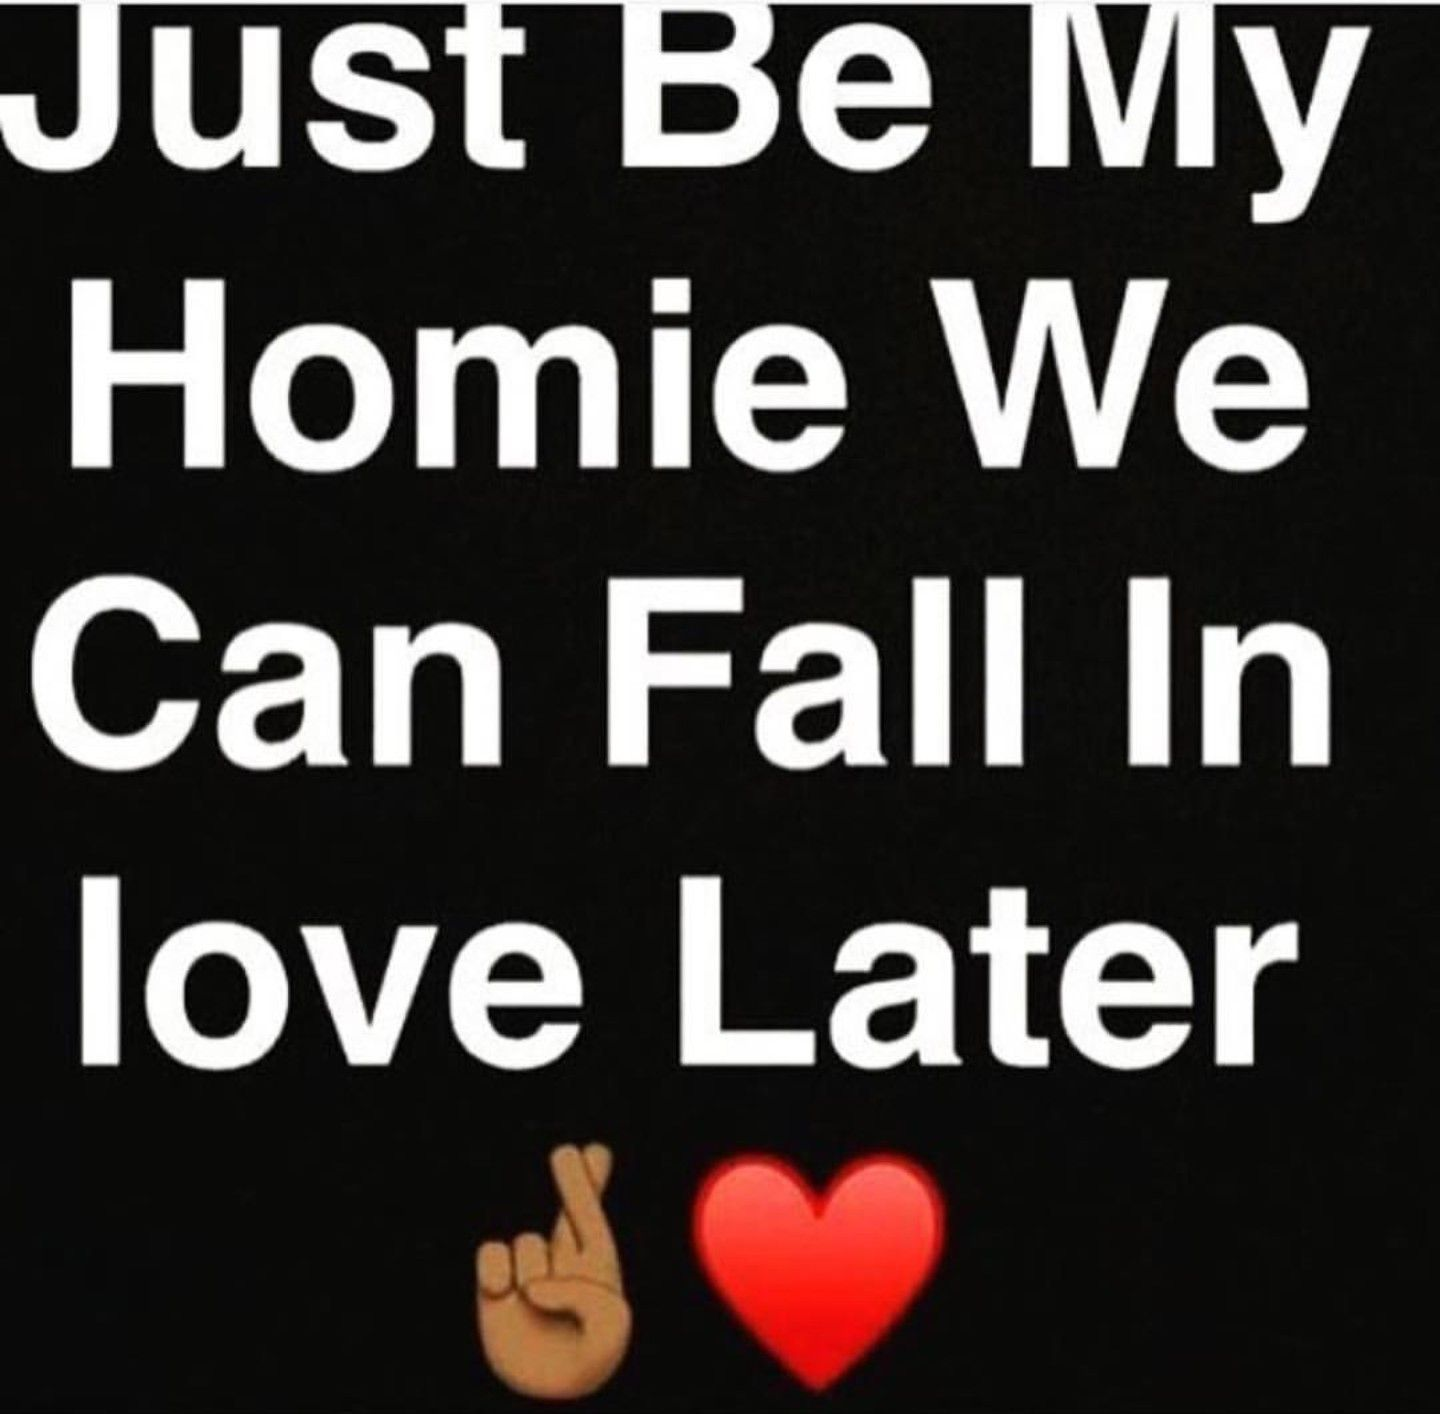 Just Be My Homie We Can Fall In Love Later Life Quotes True Words Status Quotes